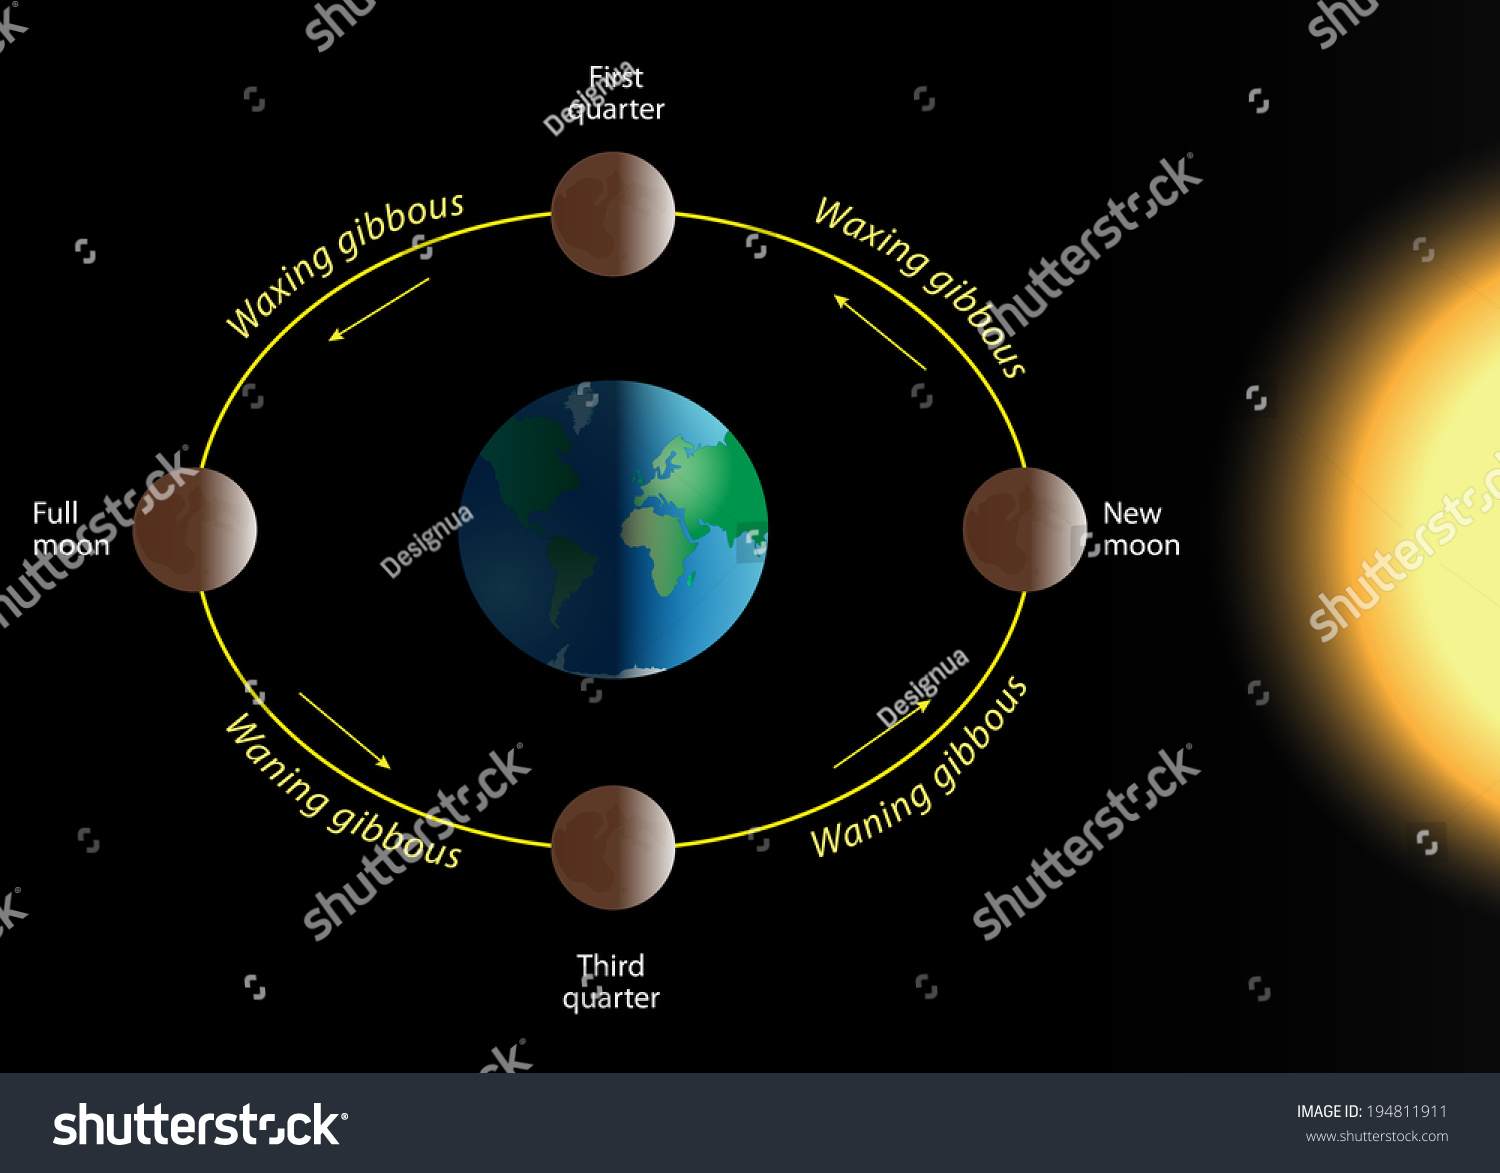 Full Moon Phase Diagram Schematics Data Wiring Diagrams Filelunar Diagrampng Wikimedia Commons Relation Phases Revolution Stock Vector 194811911 Shutterstock Crescent New